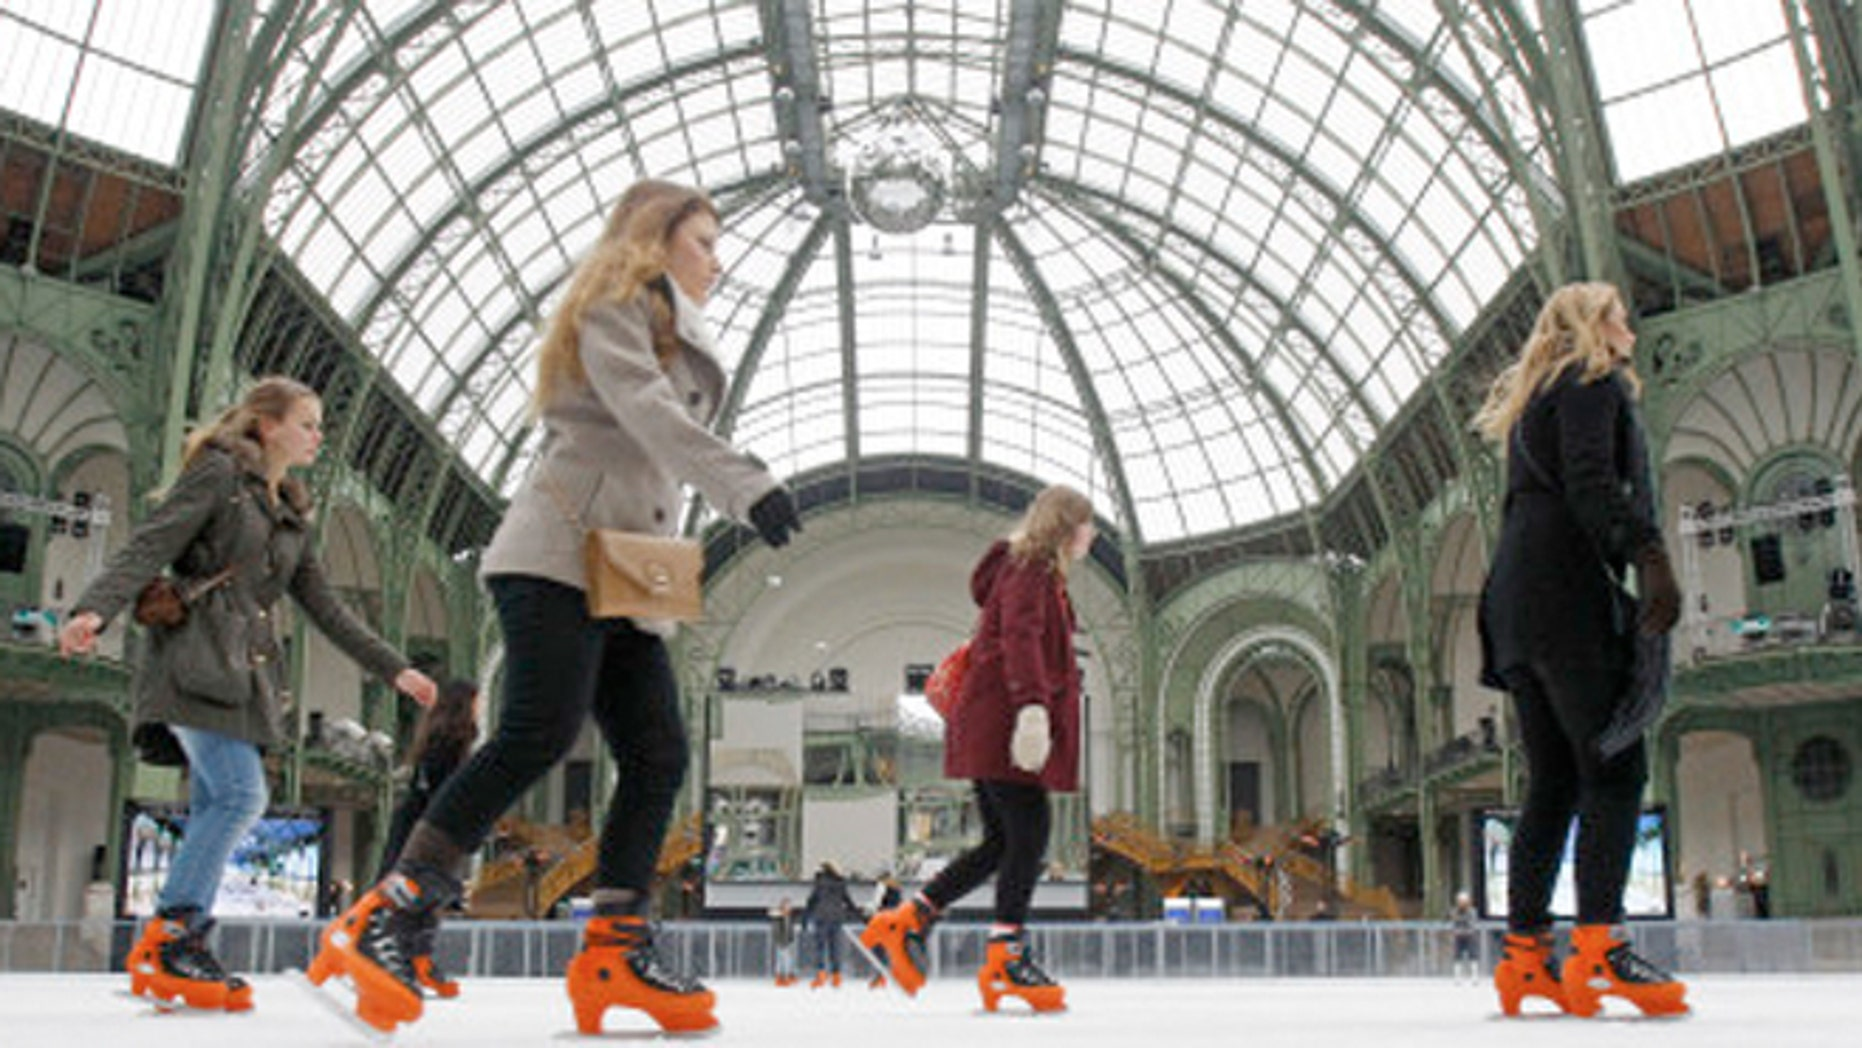 Dec. 13, 2012: Skaters take advantage of the giant ice rink set up under the famous glass roof of the Grand Palais, in Paris.